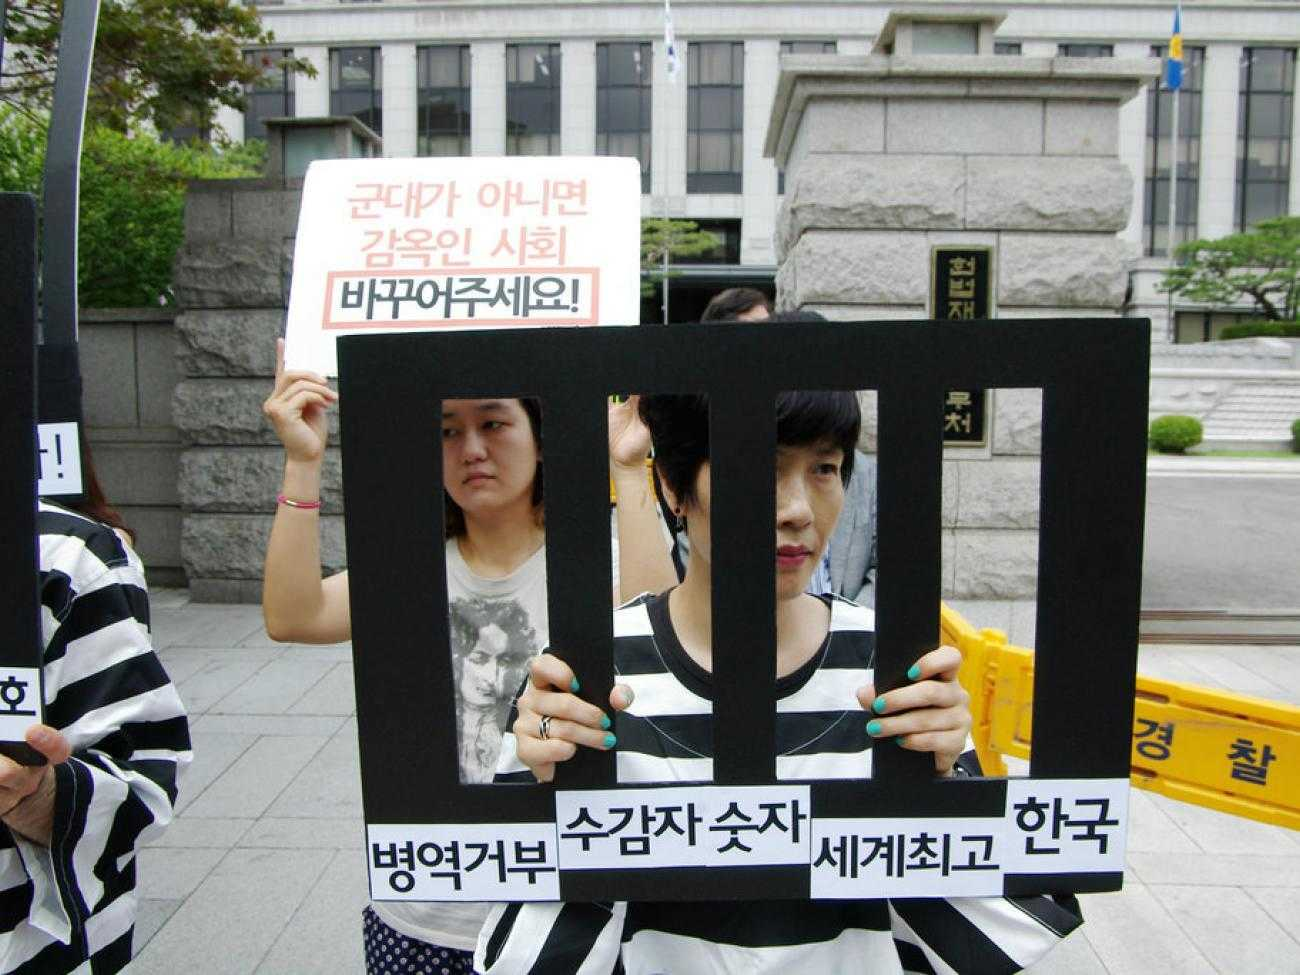 South korea protest in support of COS